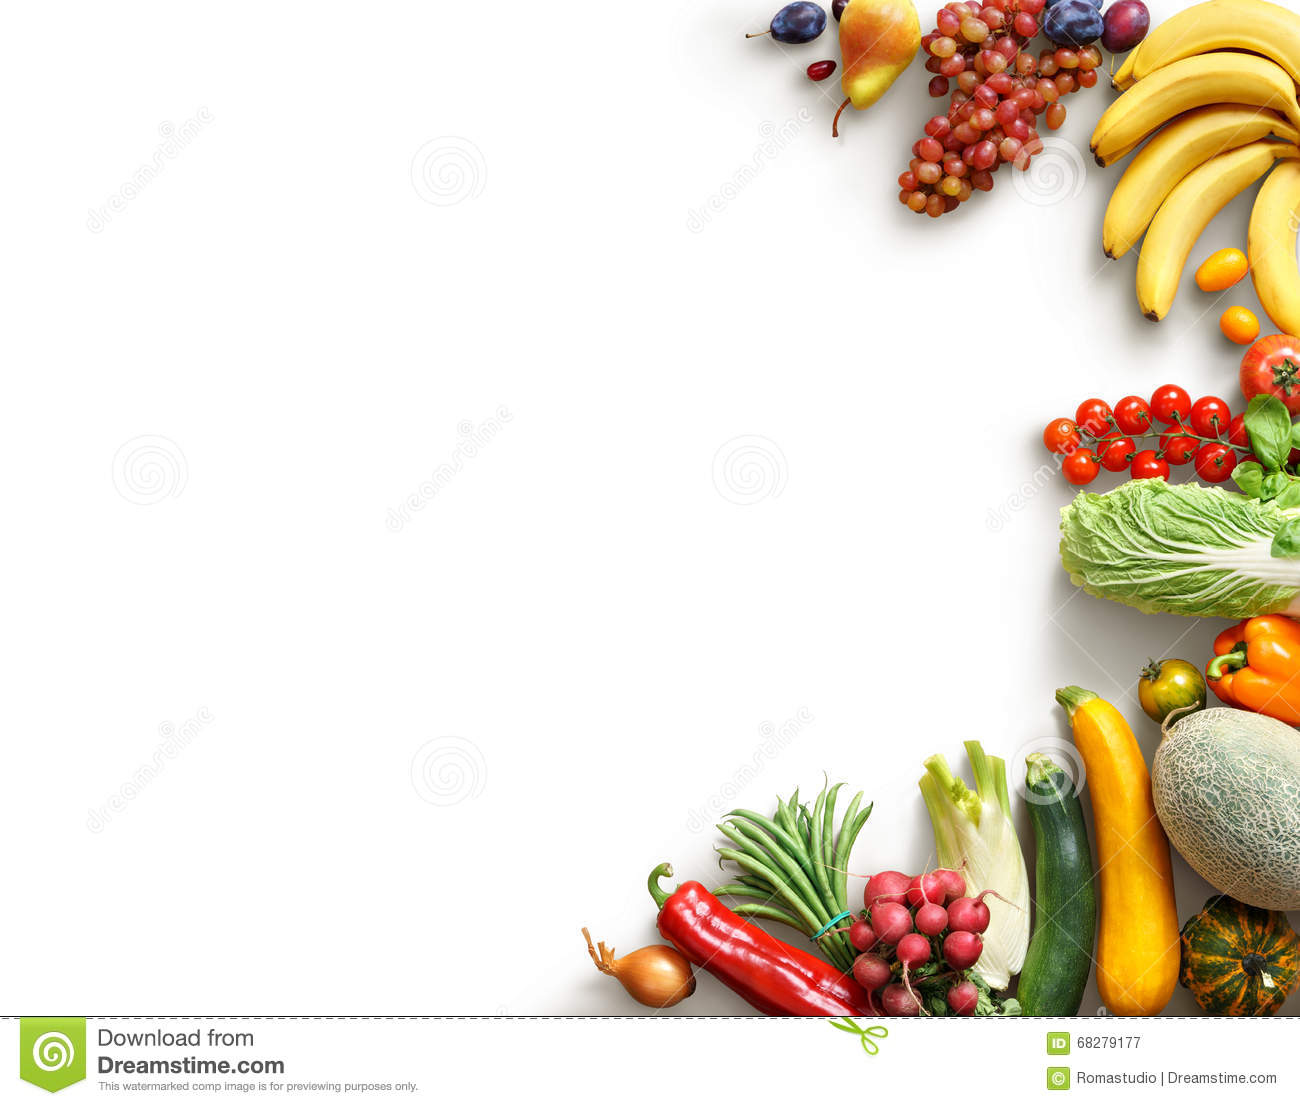 Healthy Living - PowerPoint PPT Presentation